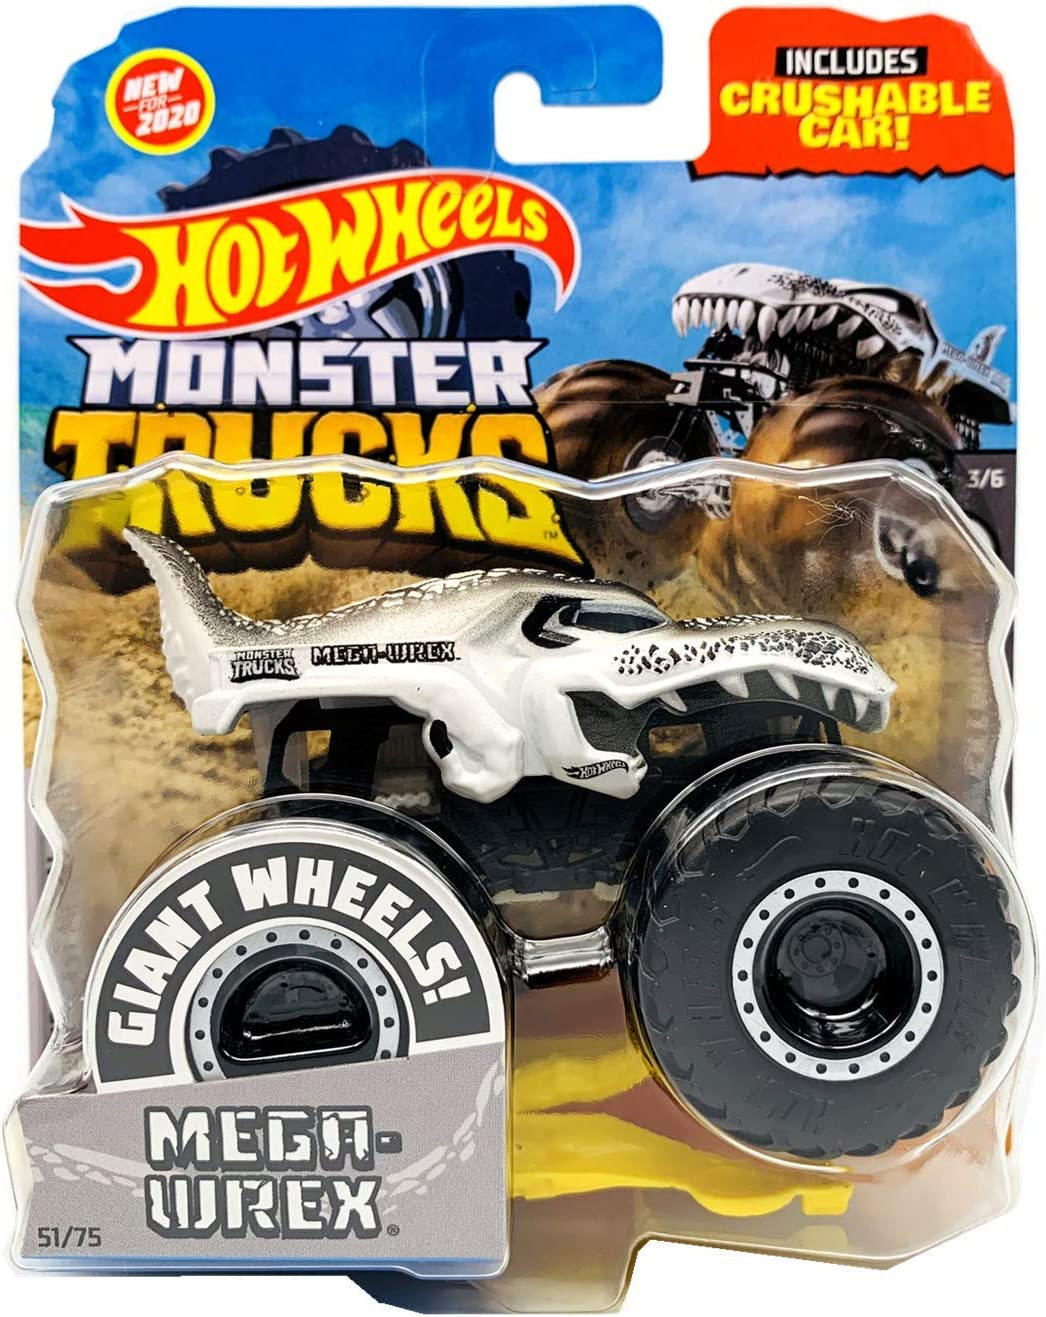 Amazon Com Hot Wheels Monster Trucks 2020 1 64 Scale Diecast Truck With Crushable Car Black And White 3 6 Mega Wrex Toys Games